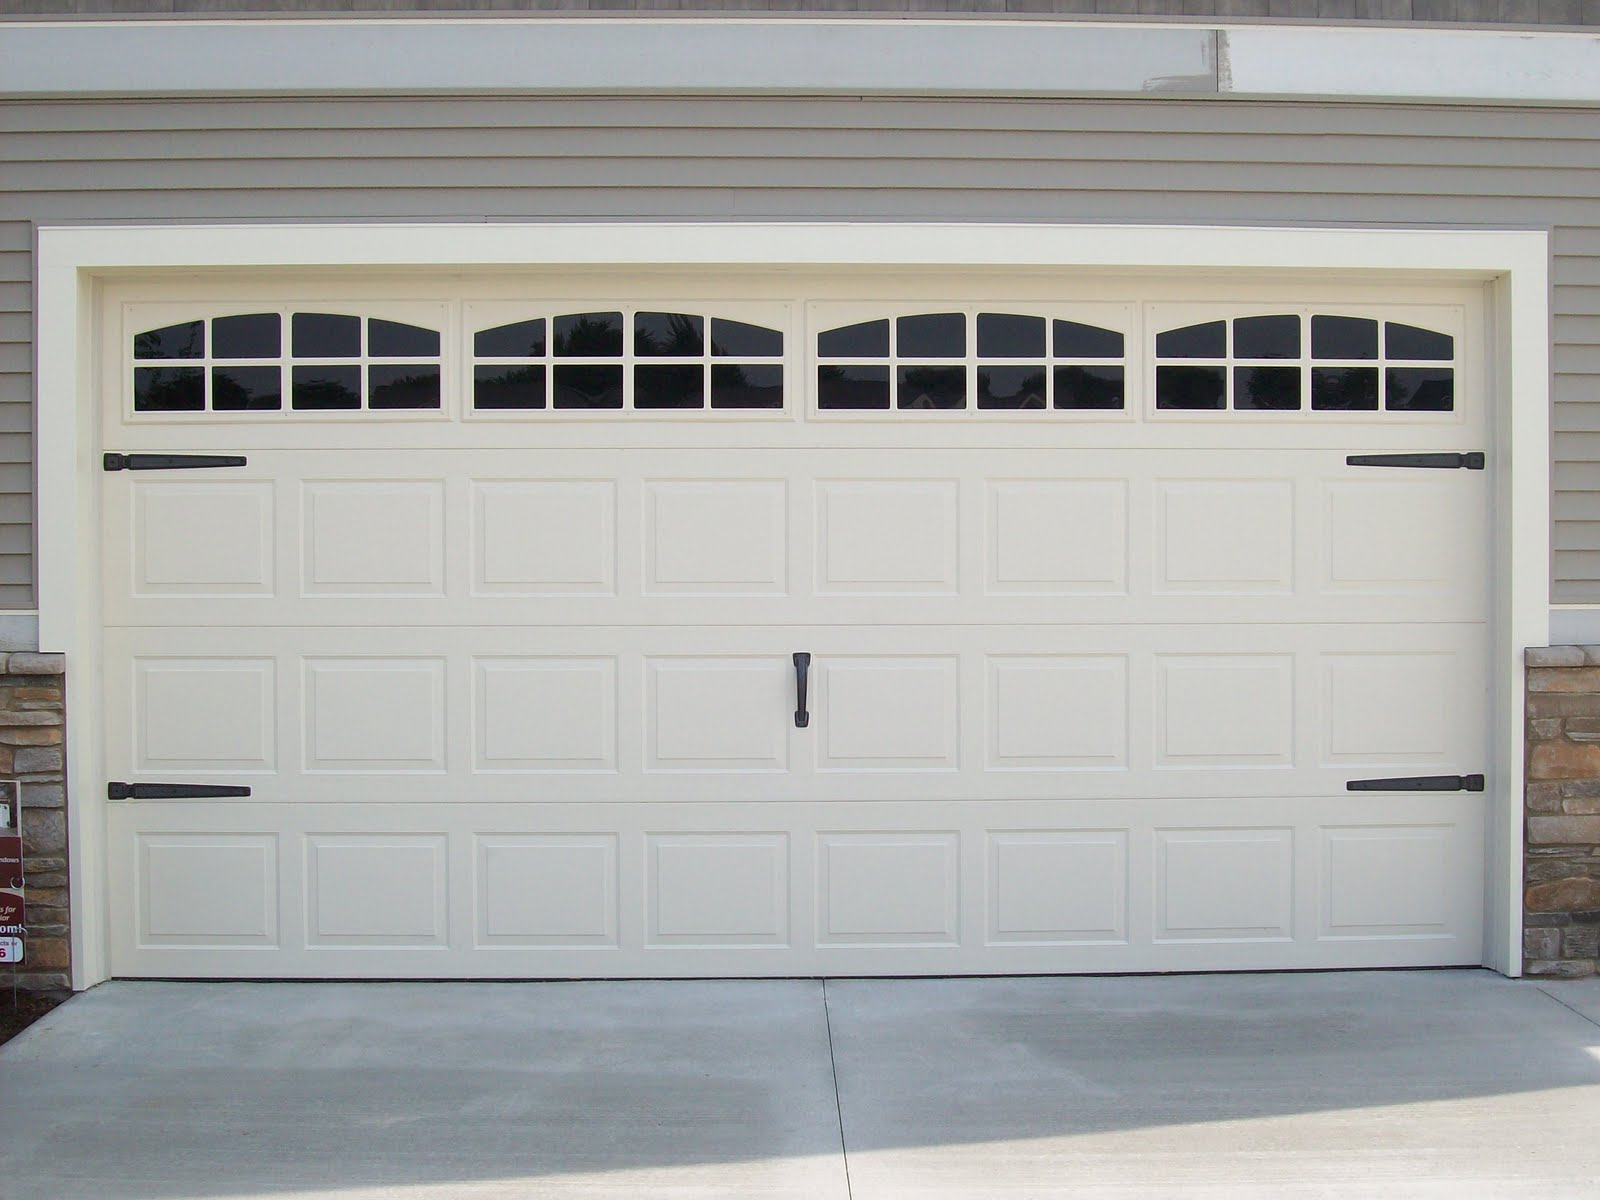 Overhead door company of the northland garage door trends for 16x7 garage door with windows